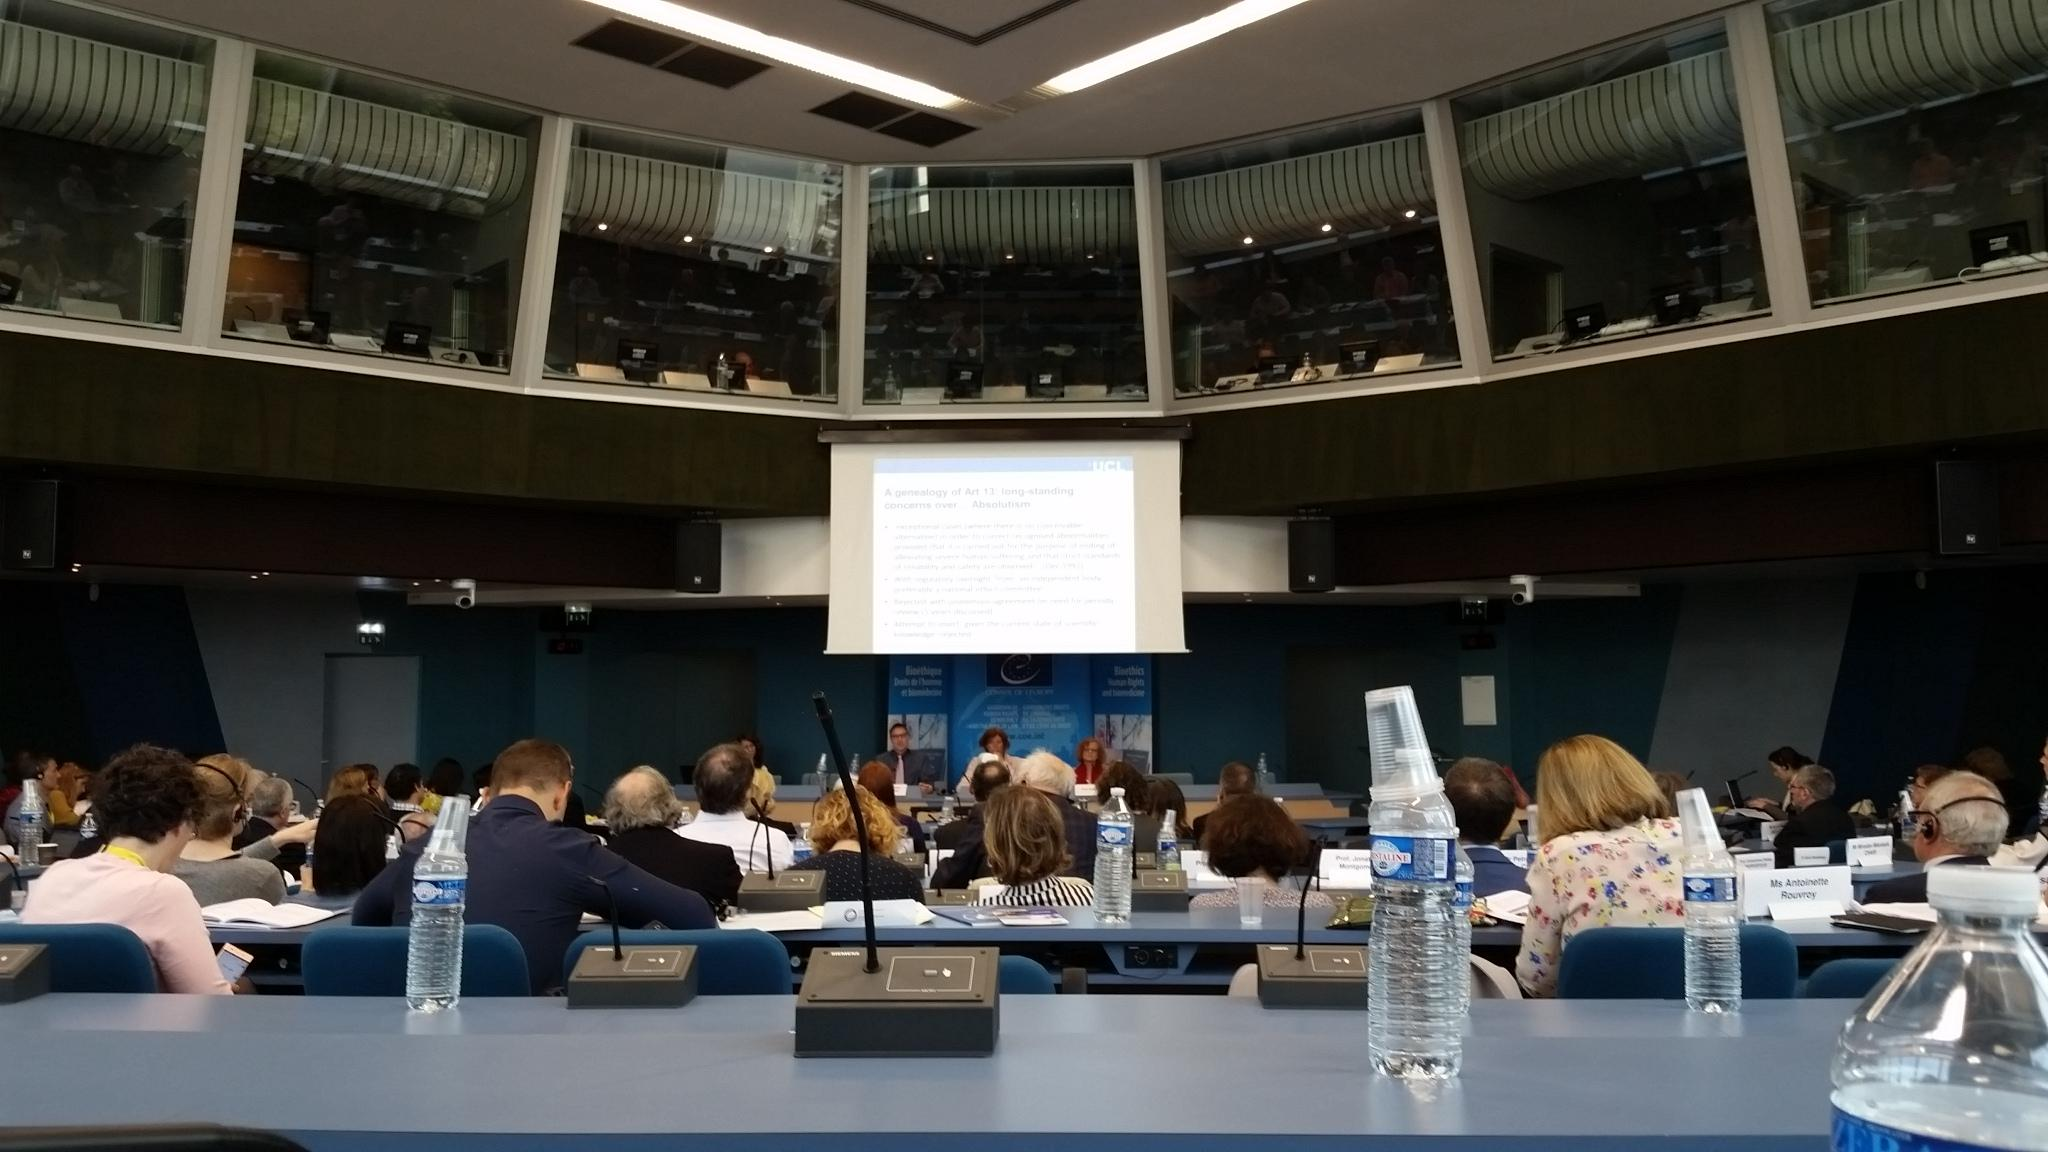 A conference room at the Council of Europe, looking towards a panel at the front